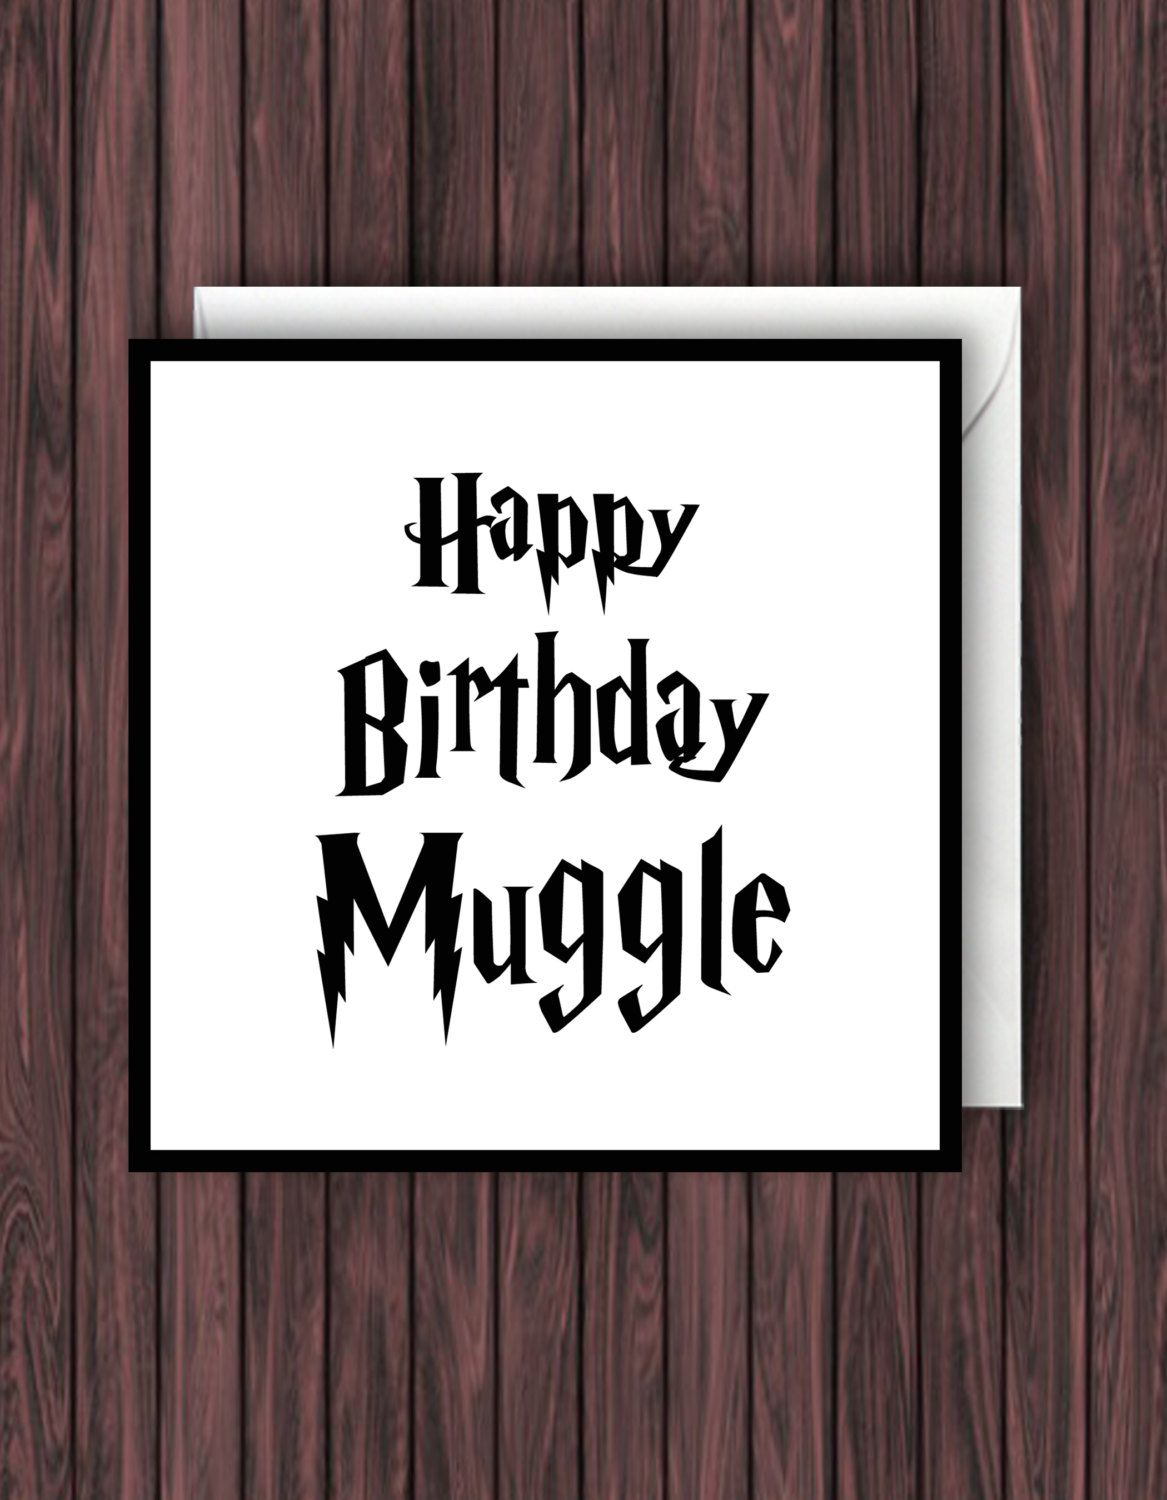 Happy Birthday Muggle Harry Potter Greeting Blank Card By TheDandyLionDesigns On Etsy